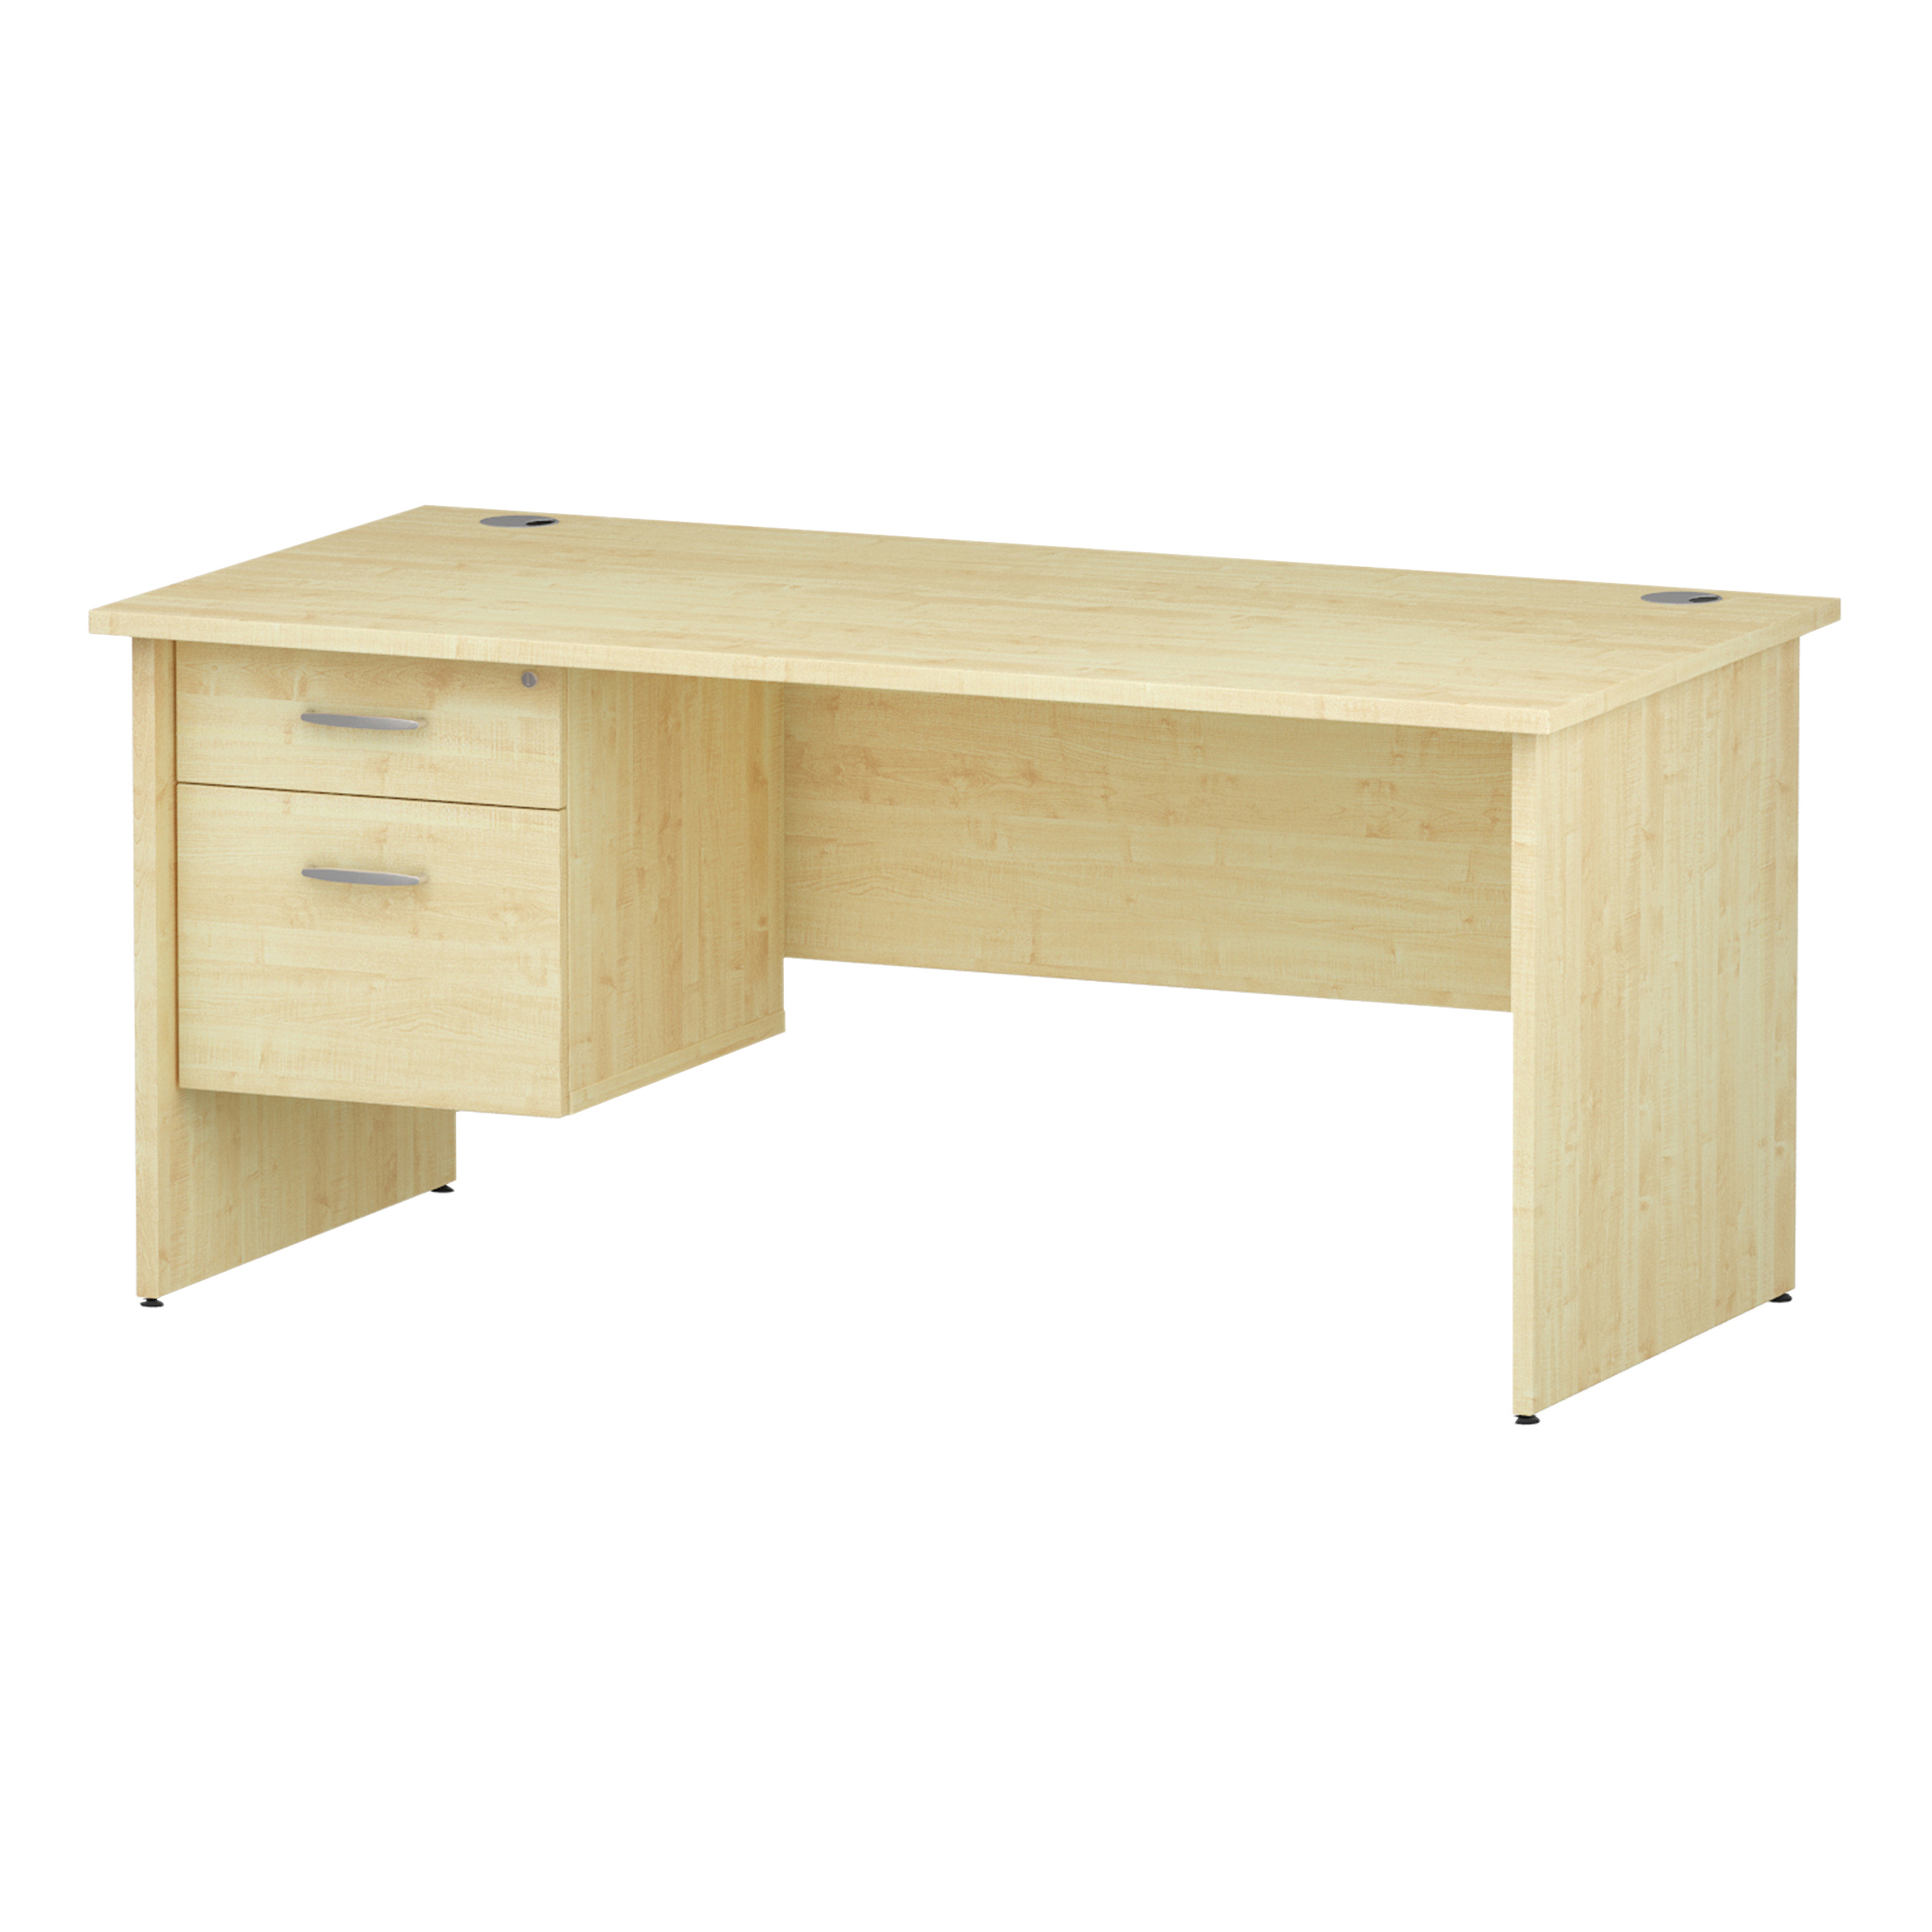 Trexus Rectangular Desk Panel End Leg 1600x800mm Fixed Pedestal 2 Drawers Maple Ref I002478